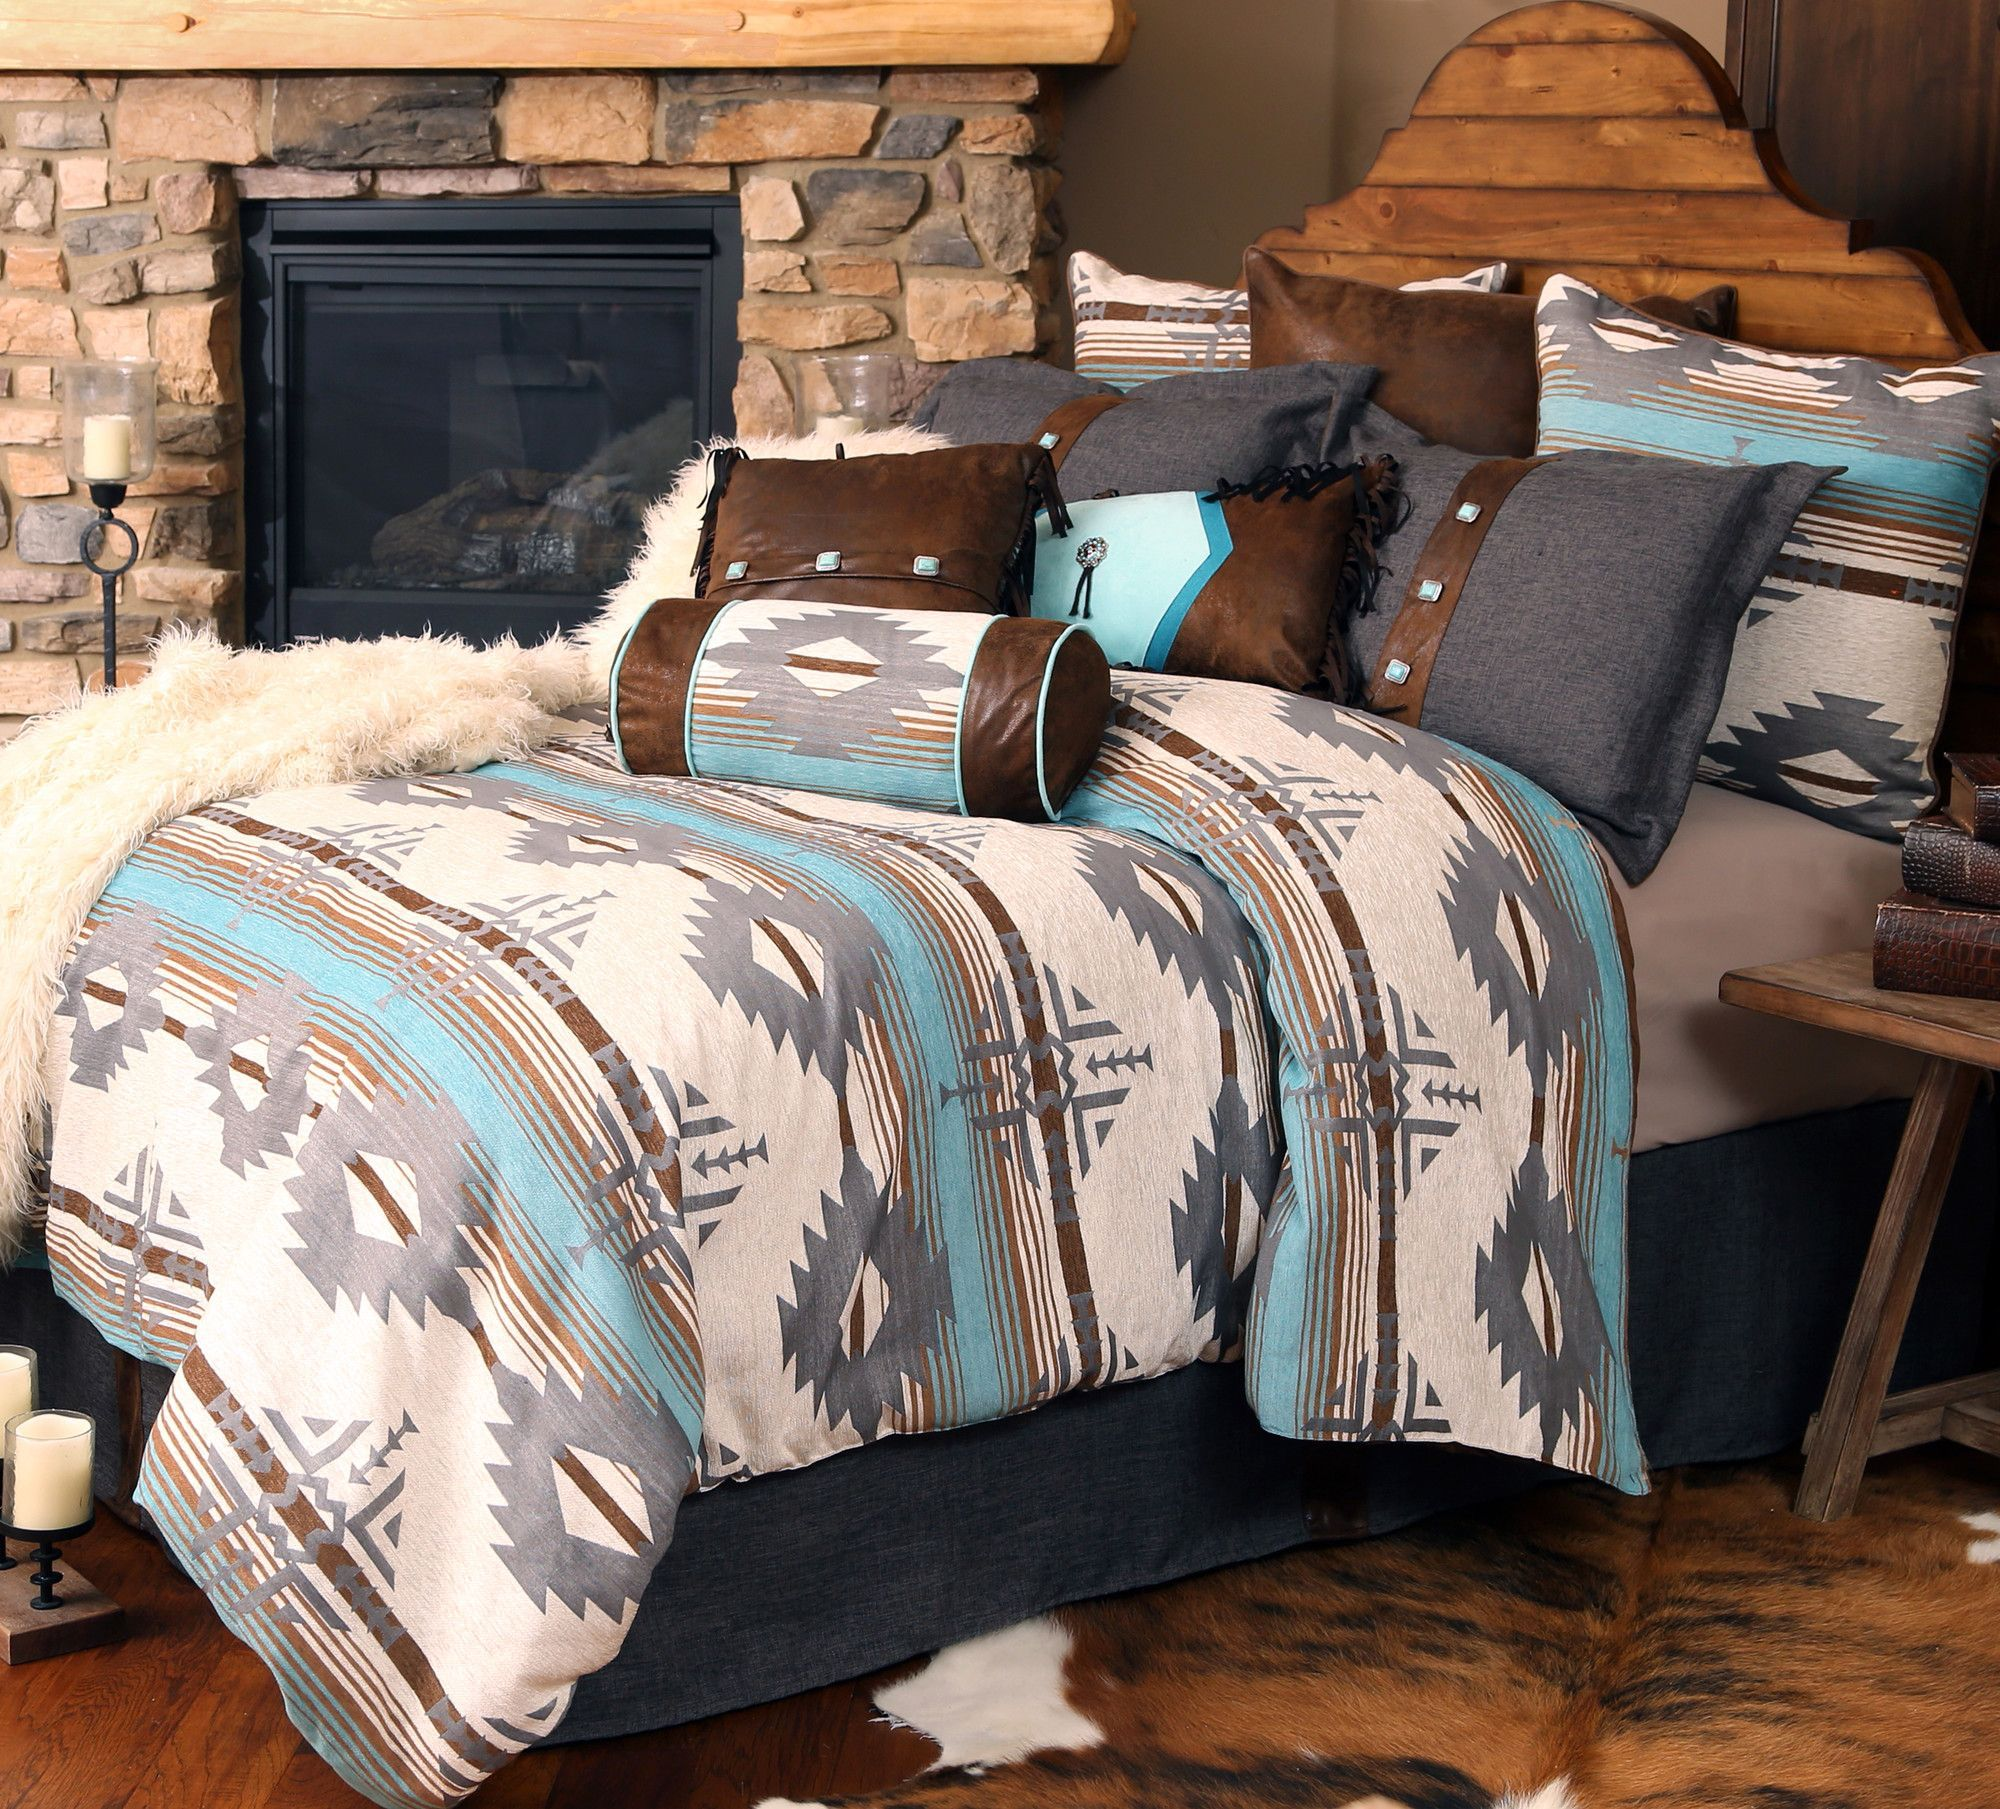 montana bedding collection  home sweet home  pinterest  montana  - carstens inc twin contains  comforter  bed skirt  pillow sham and neckroll queenking contains  comforter  bed skirt  pillow shams and